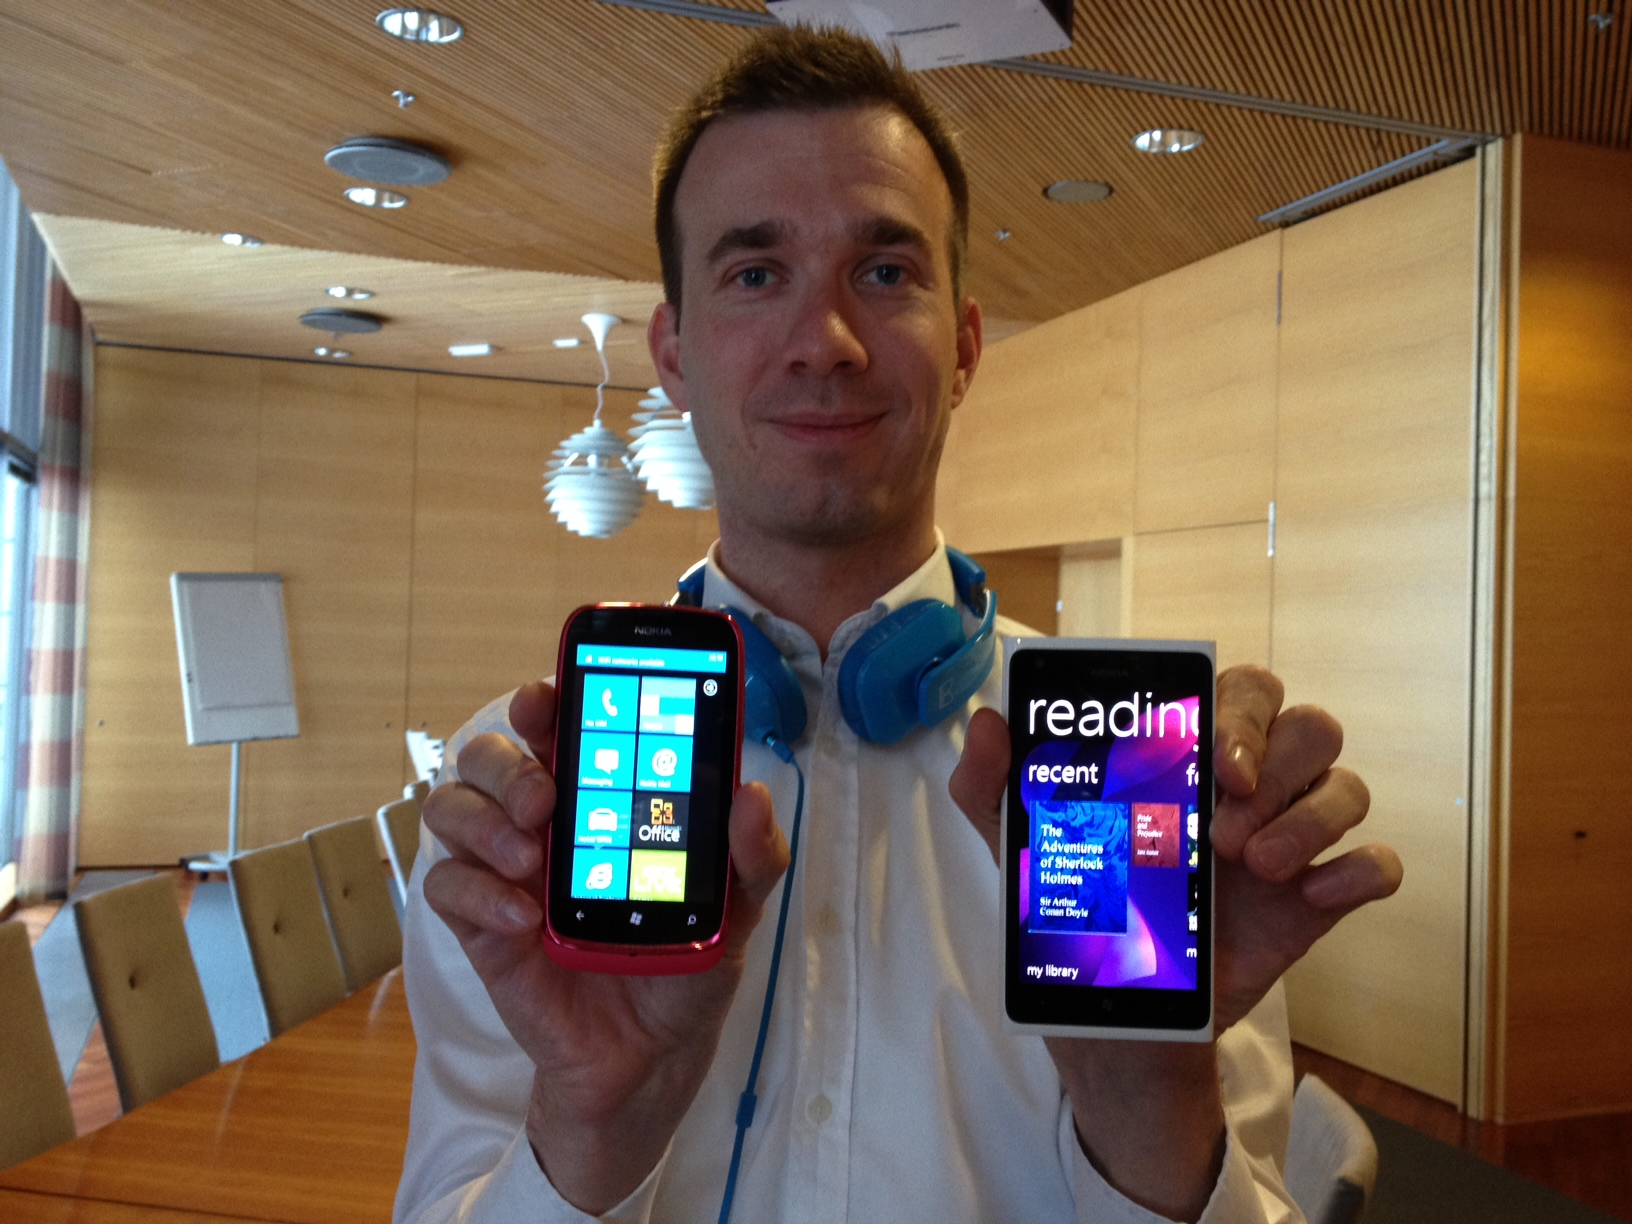 With Lumia 610, Nokia Aims to Take Windows Phone to a New Low (Price